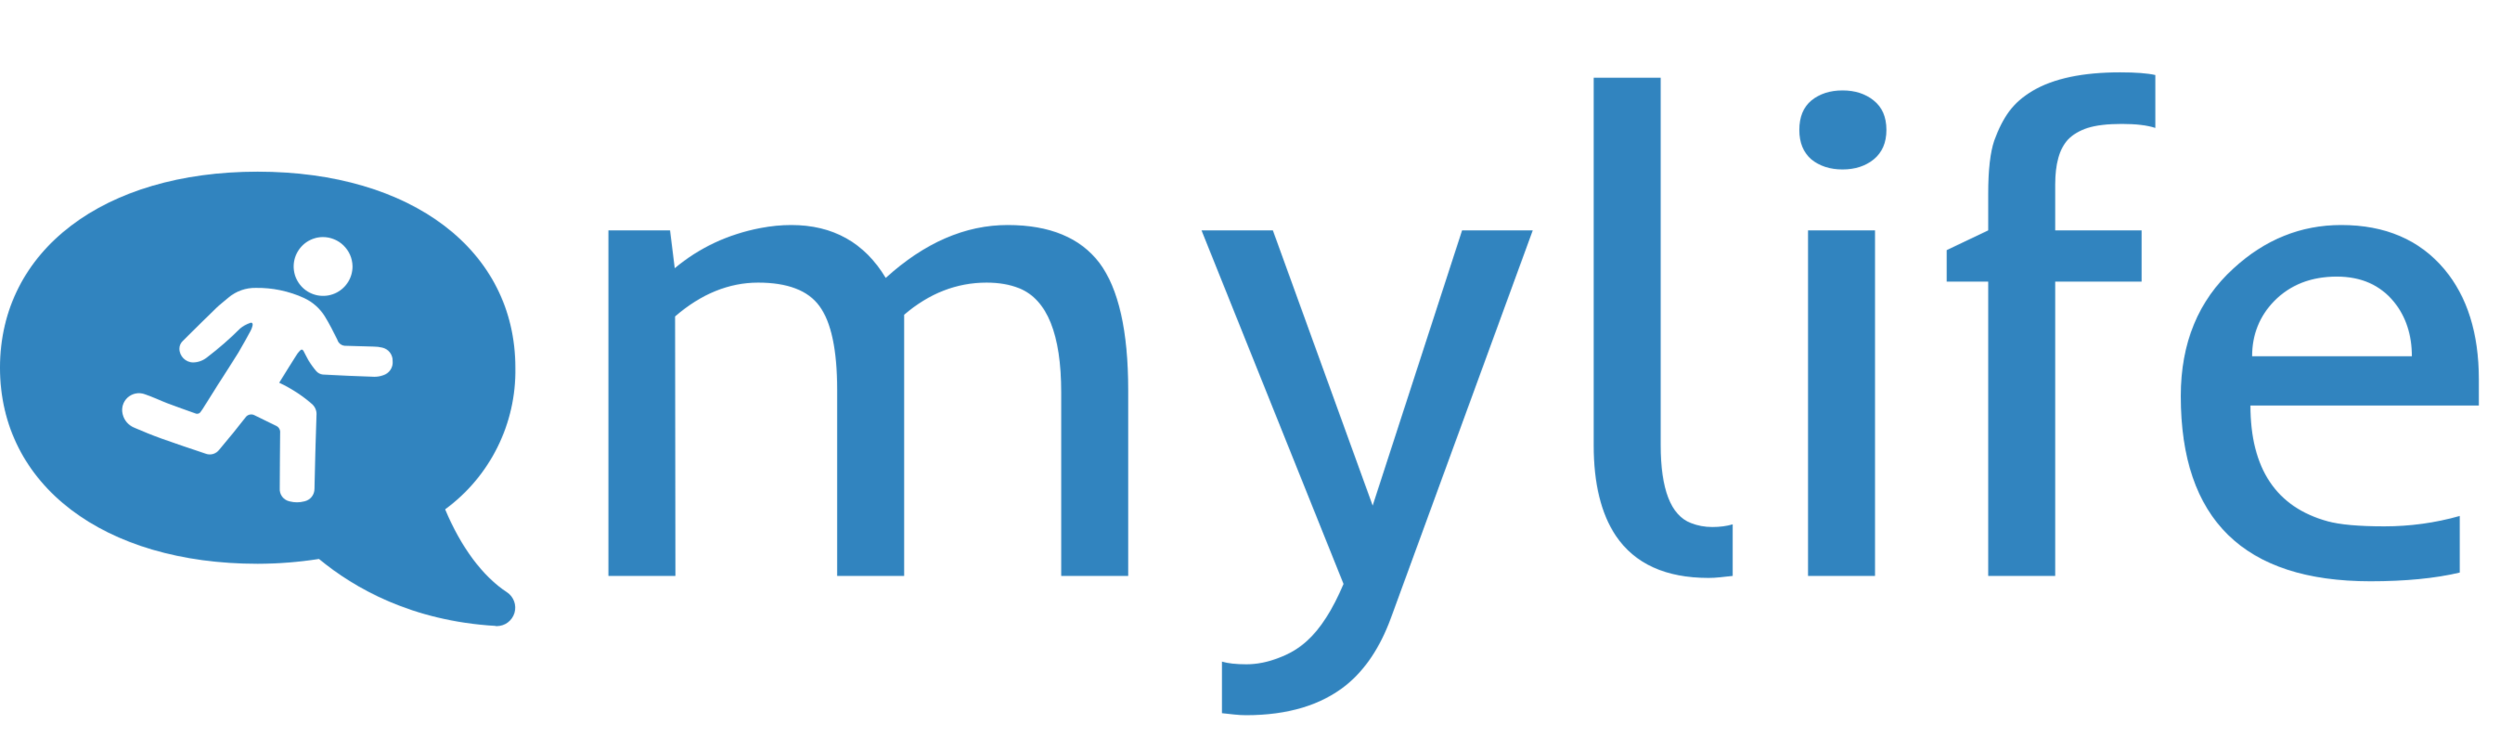 mylife logo final clean.png